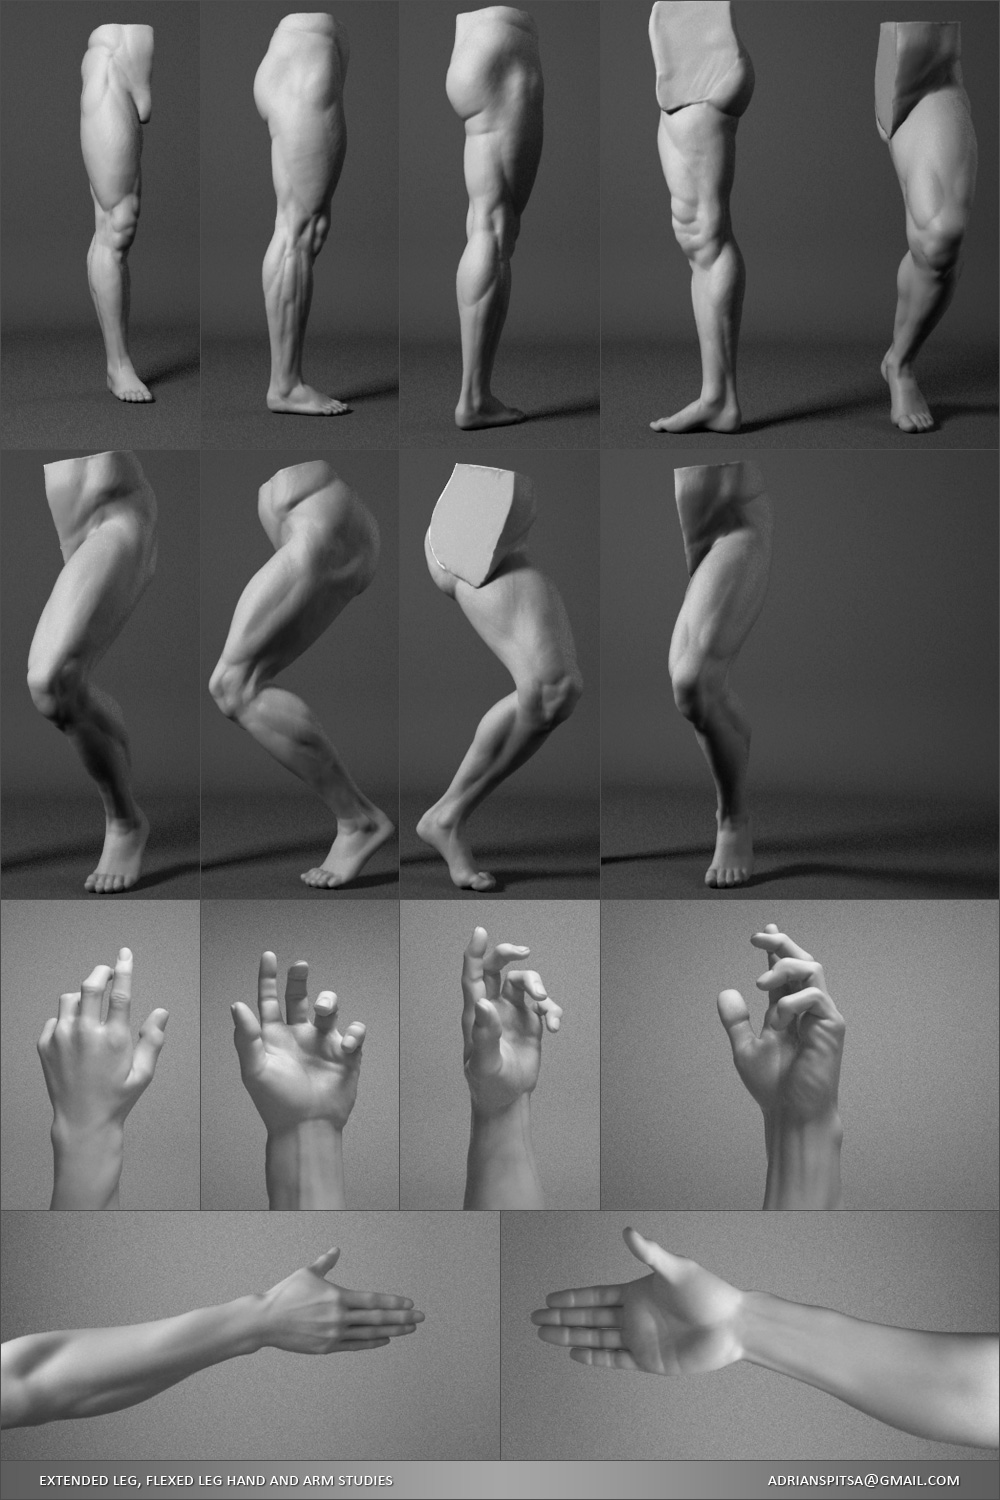 Digital Sculpting Studies 3D model - Leg & Hand Studies